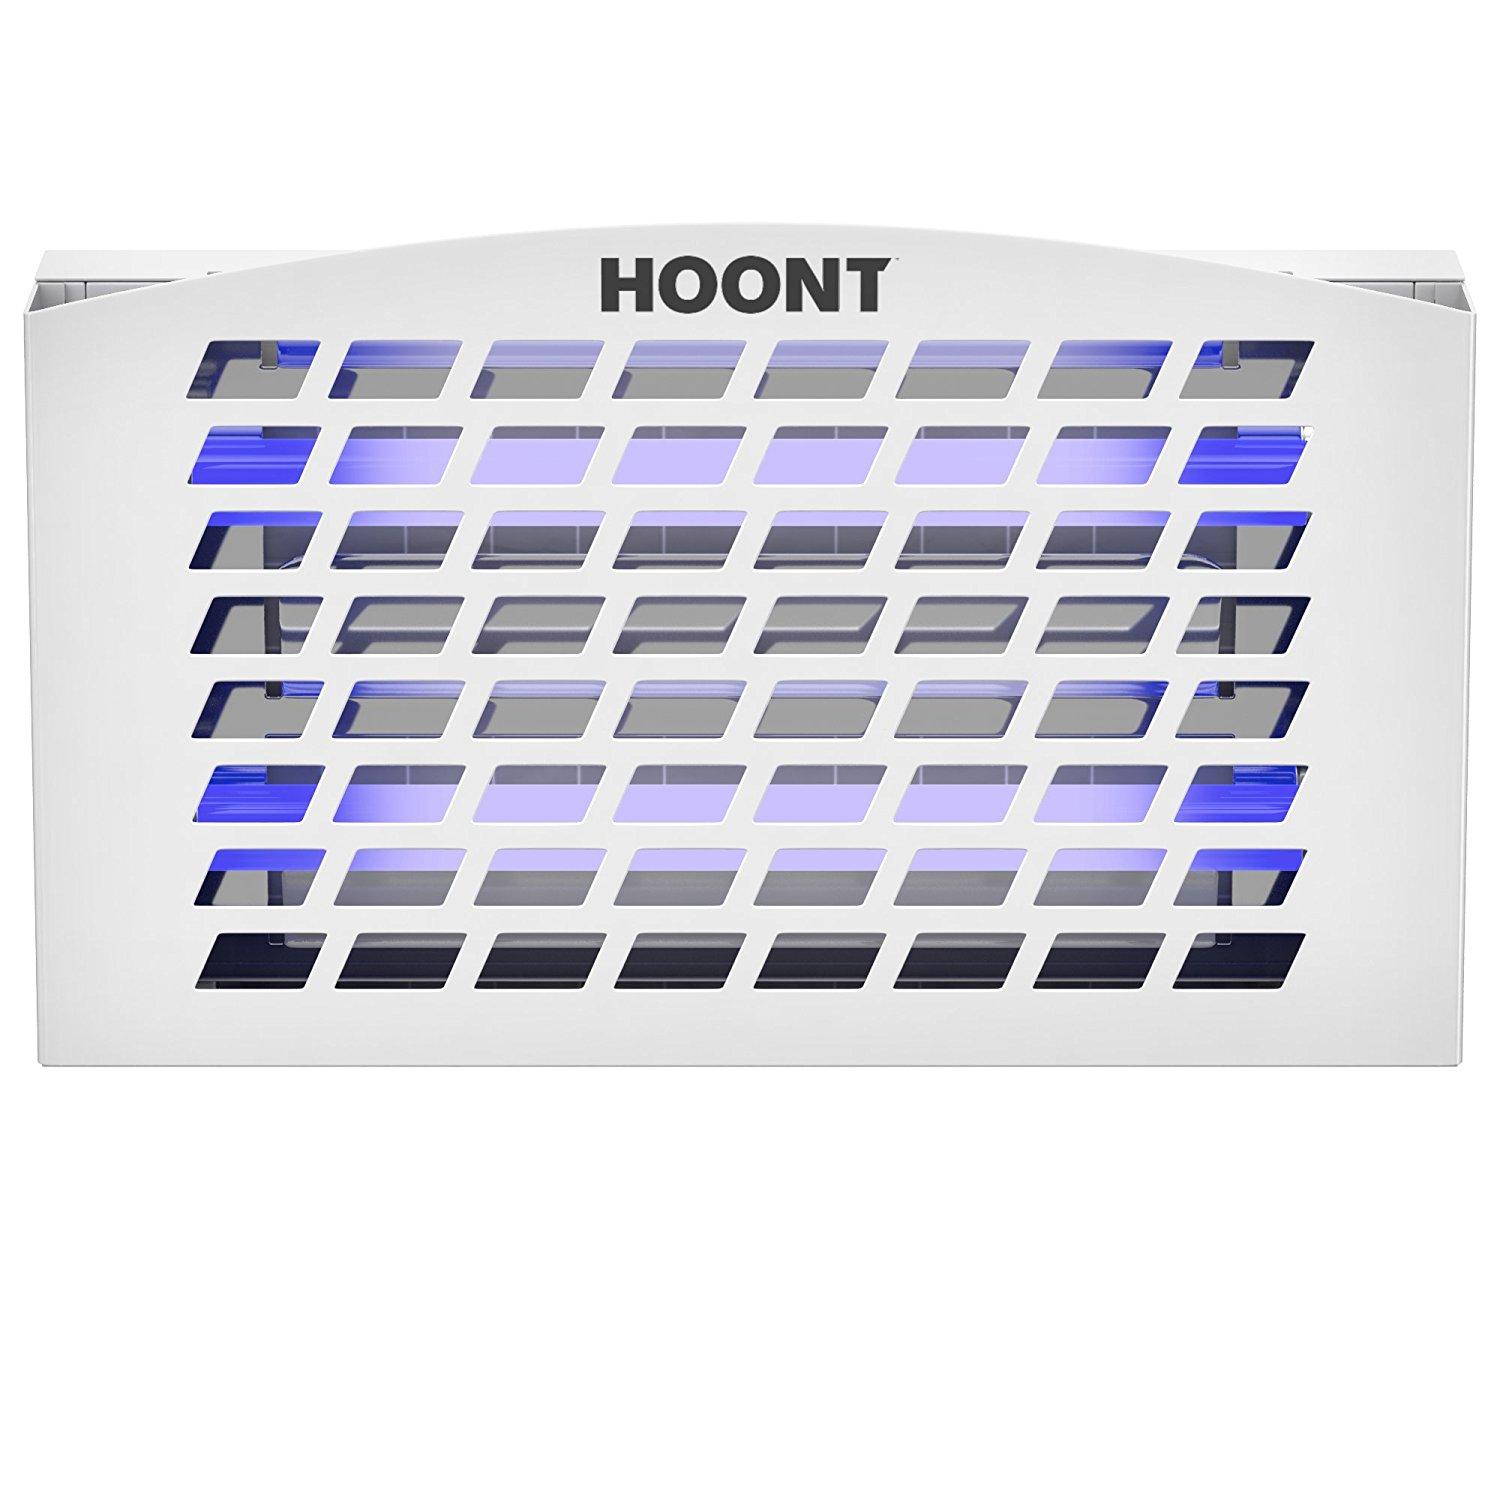 Hoont Indoor Plug-in Sticky Fly Trap Catcher Killer with Bright UV Light Attracter (Includes 2-Adhesive Glue-Boards) / Traps Flies, Insects, Mosquitoes, Gnats, Etc.- For Residential and Commercial Use